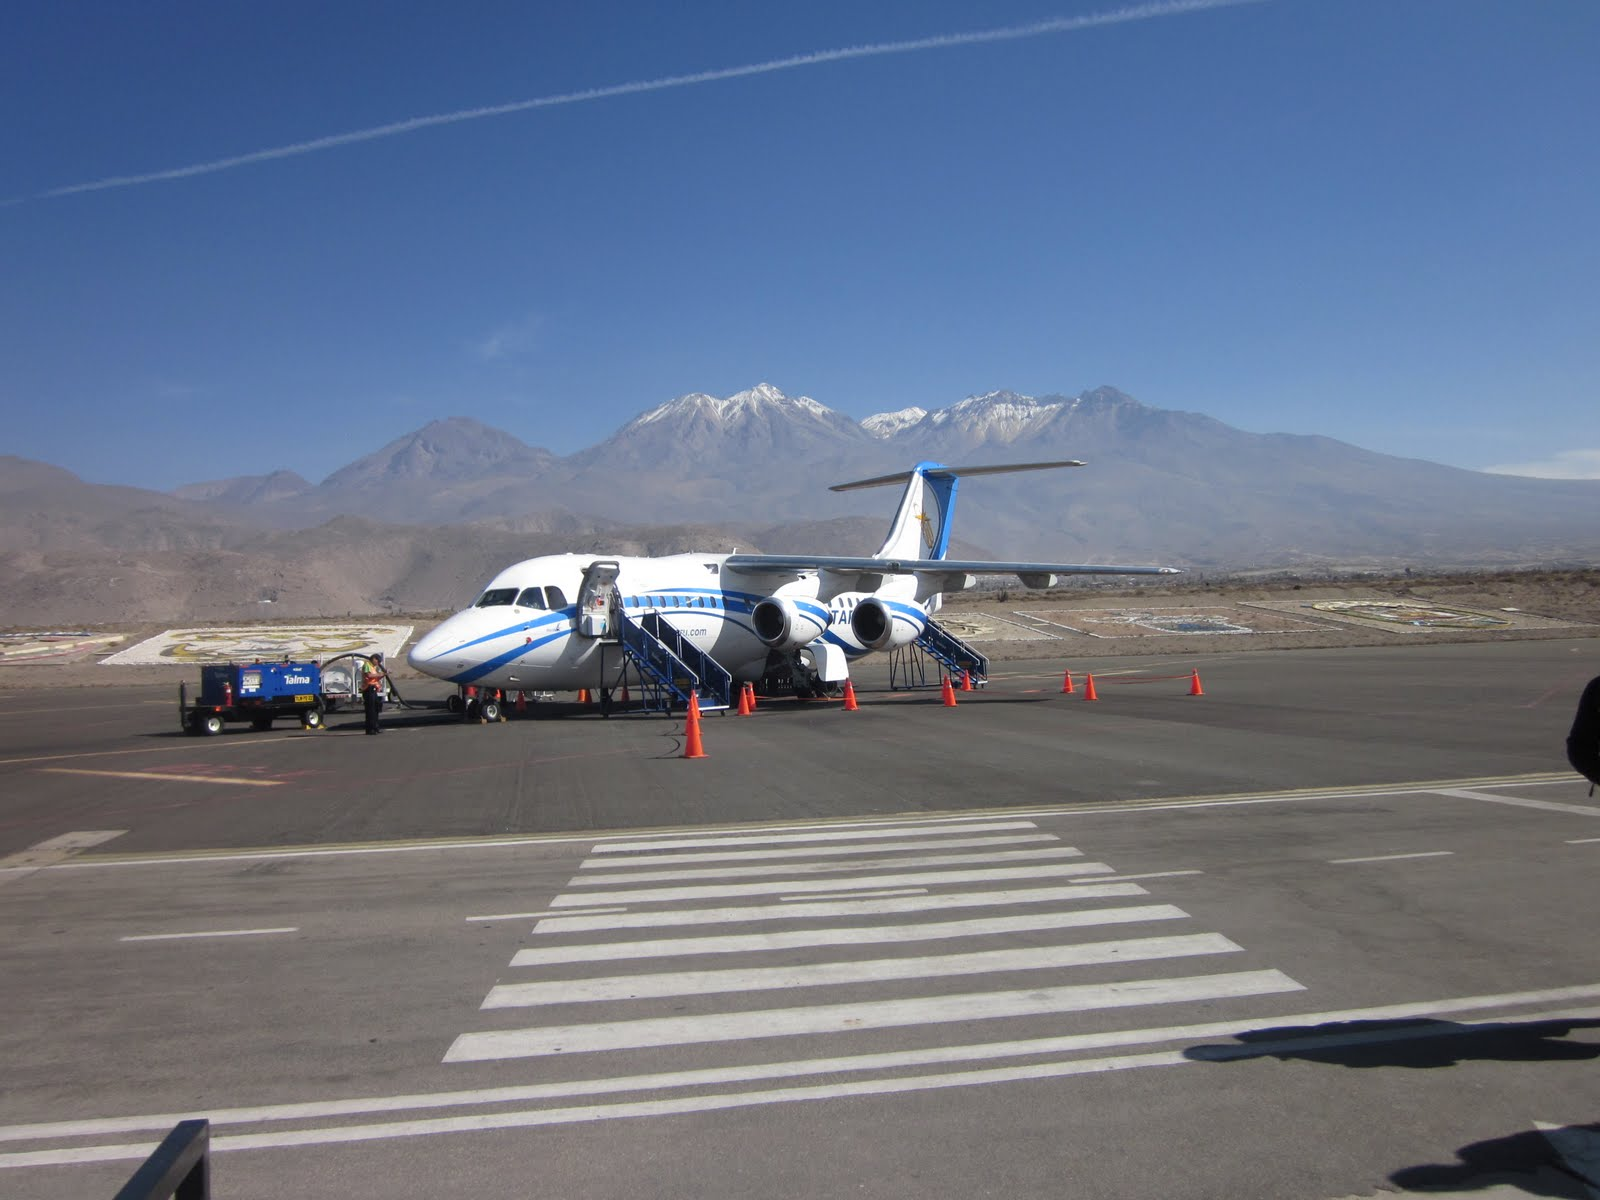 Airport in Arequipa